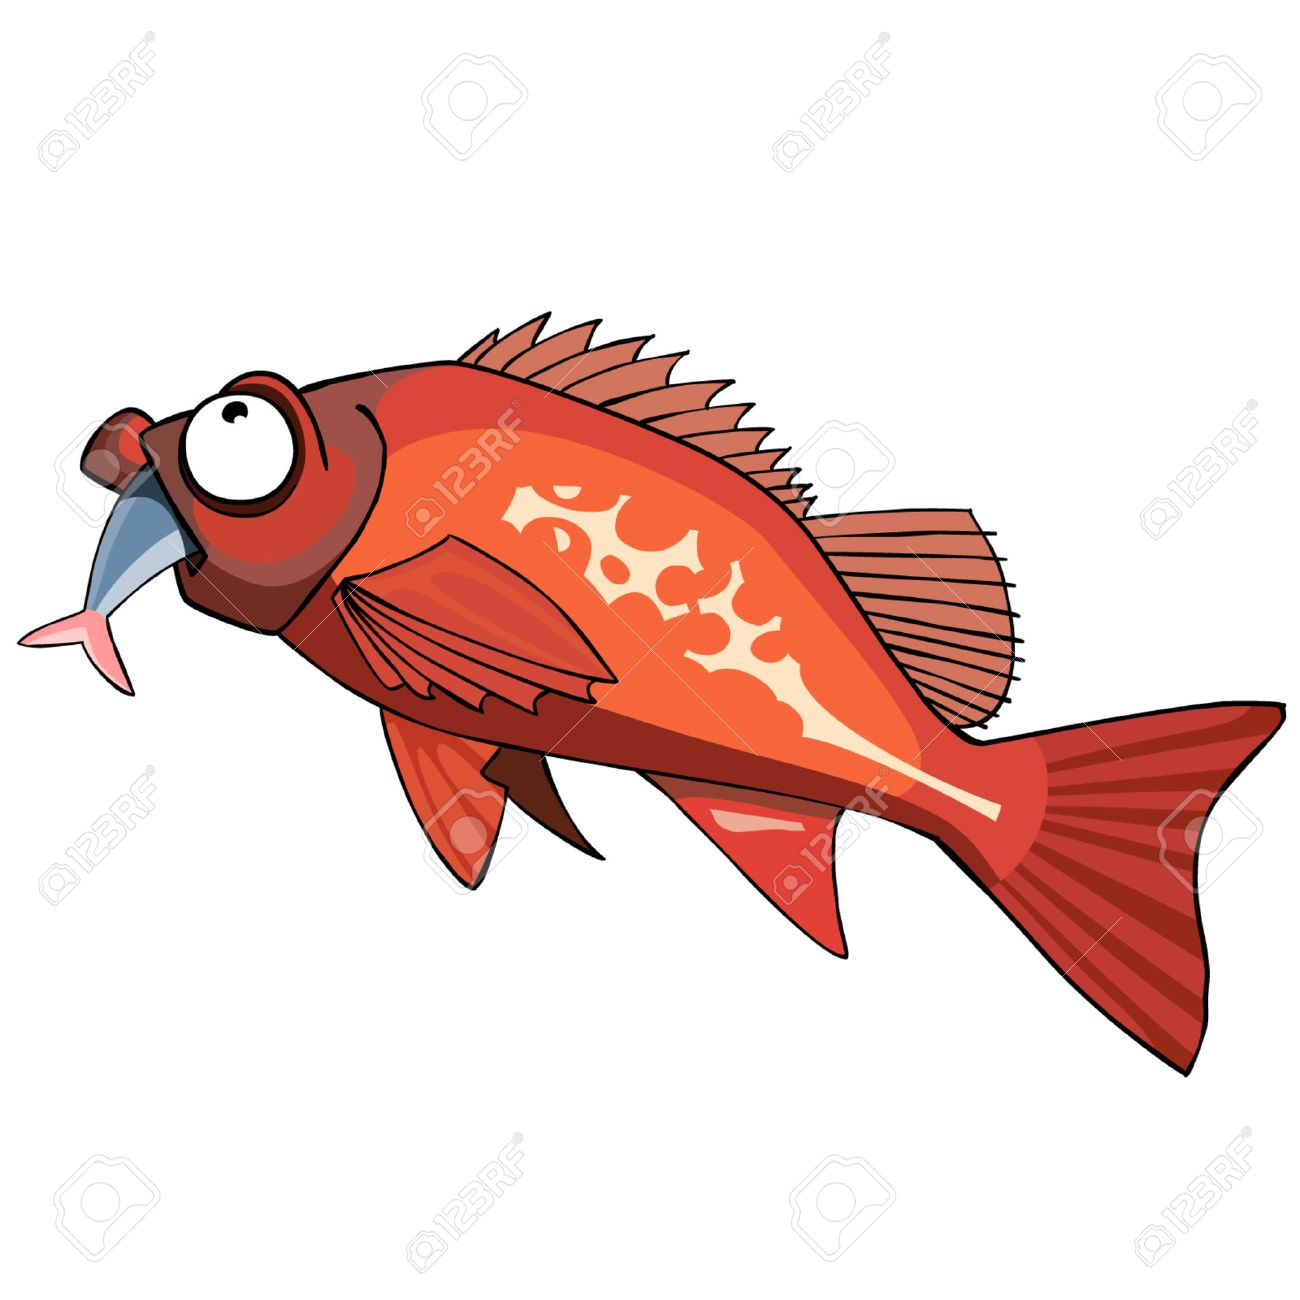 Red Grouper Fish | Cartoon Red Grouper Fish Eating Royalty Free Cliparts Vectors And